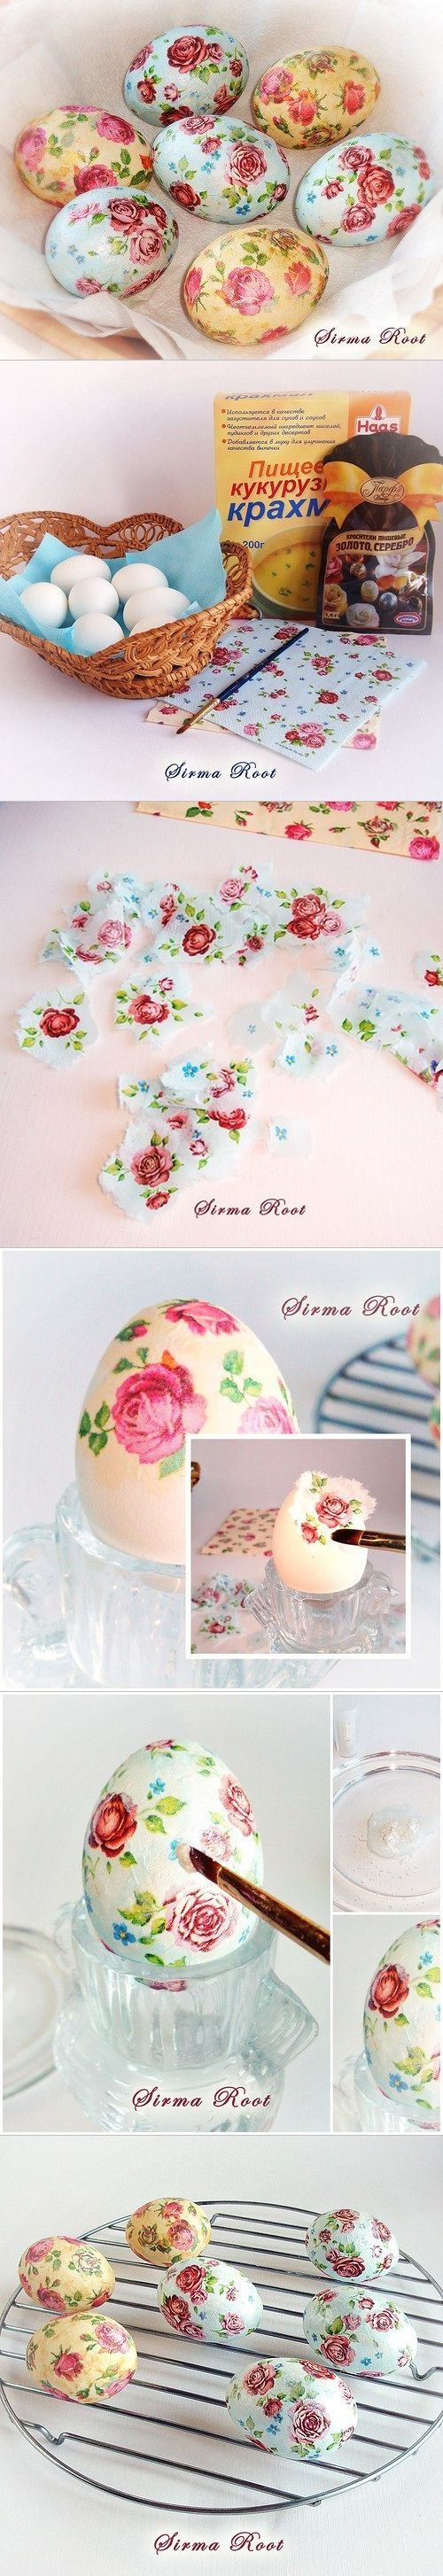 DIY Flower Patterned Easter Egg | www.FabArtDIY.com LIKE Us on Facebook ==> https://www.facebook.com/FabArtDIY